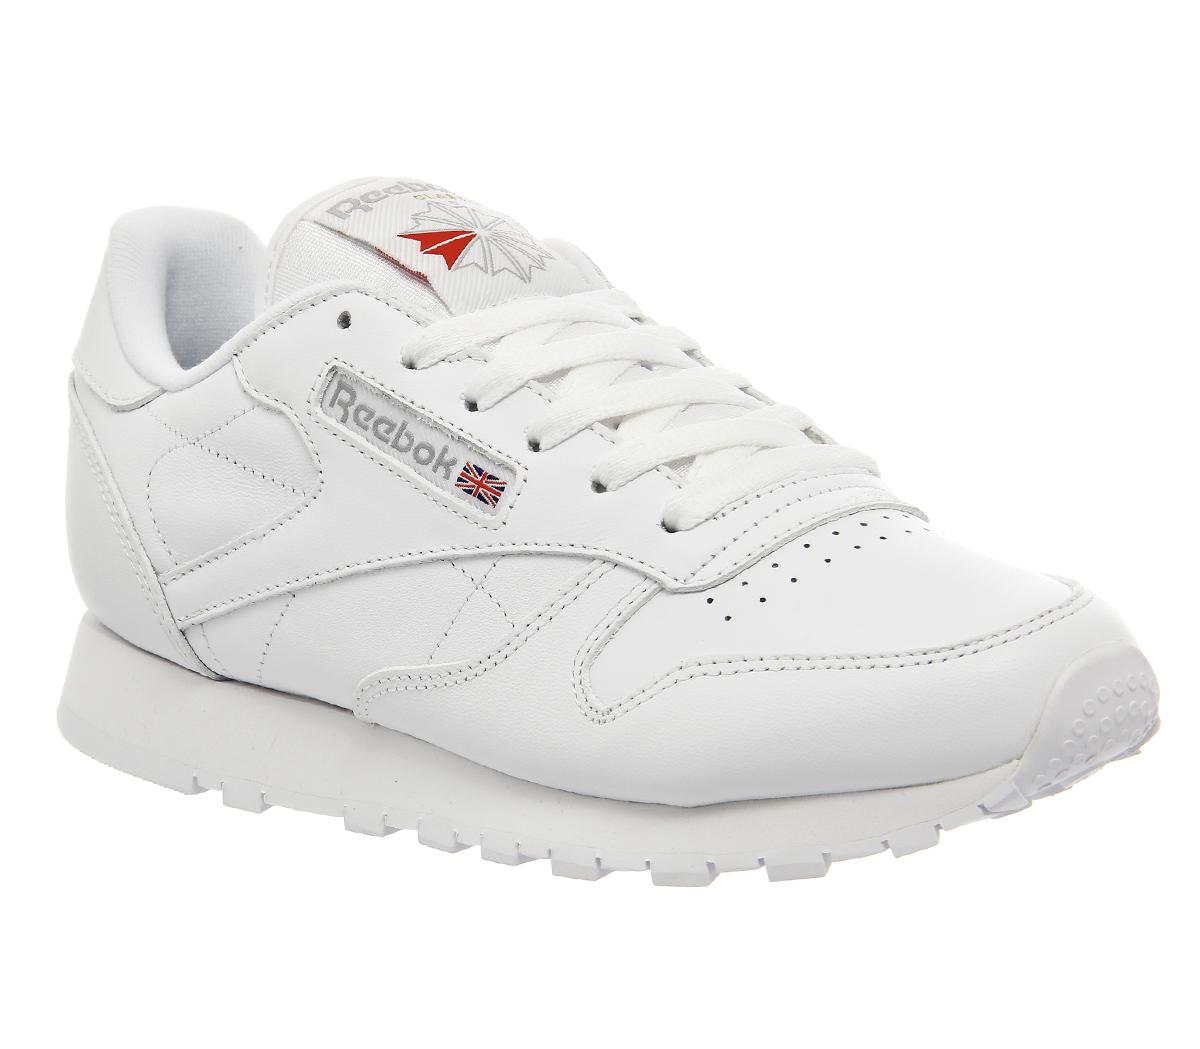 Reebok Classic Youth Trainers